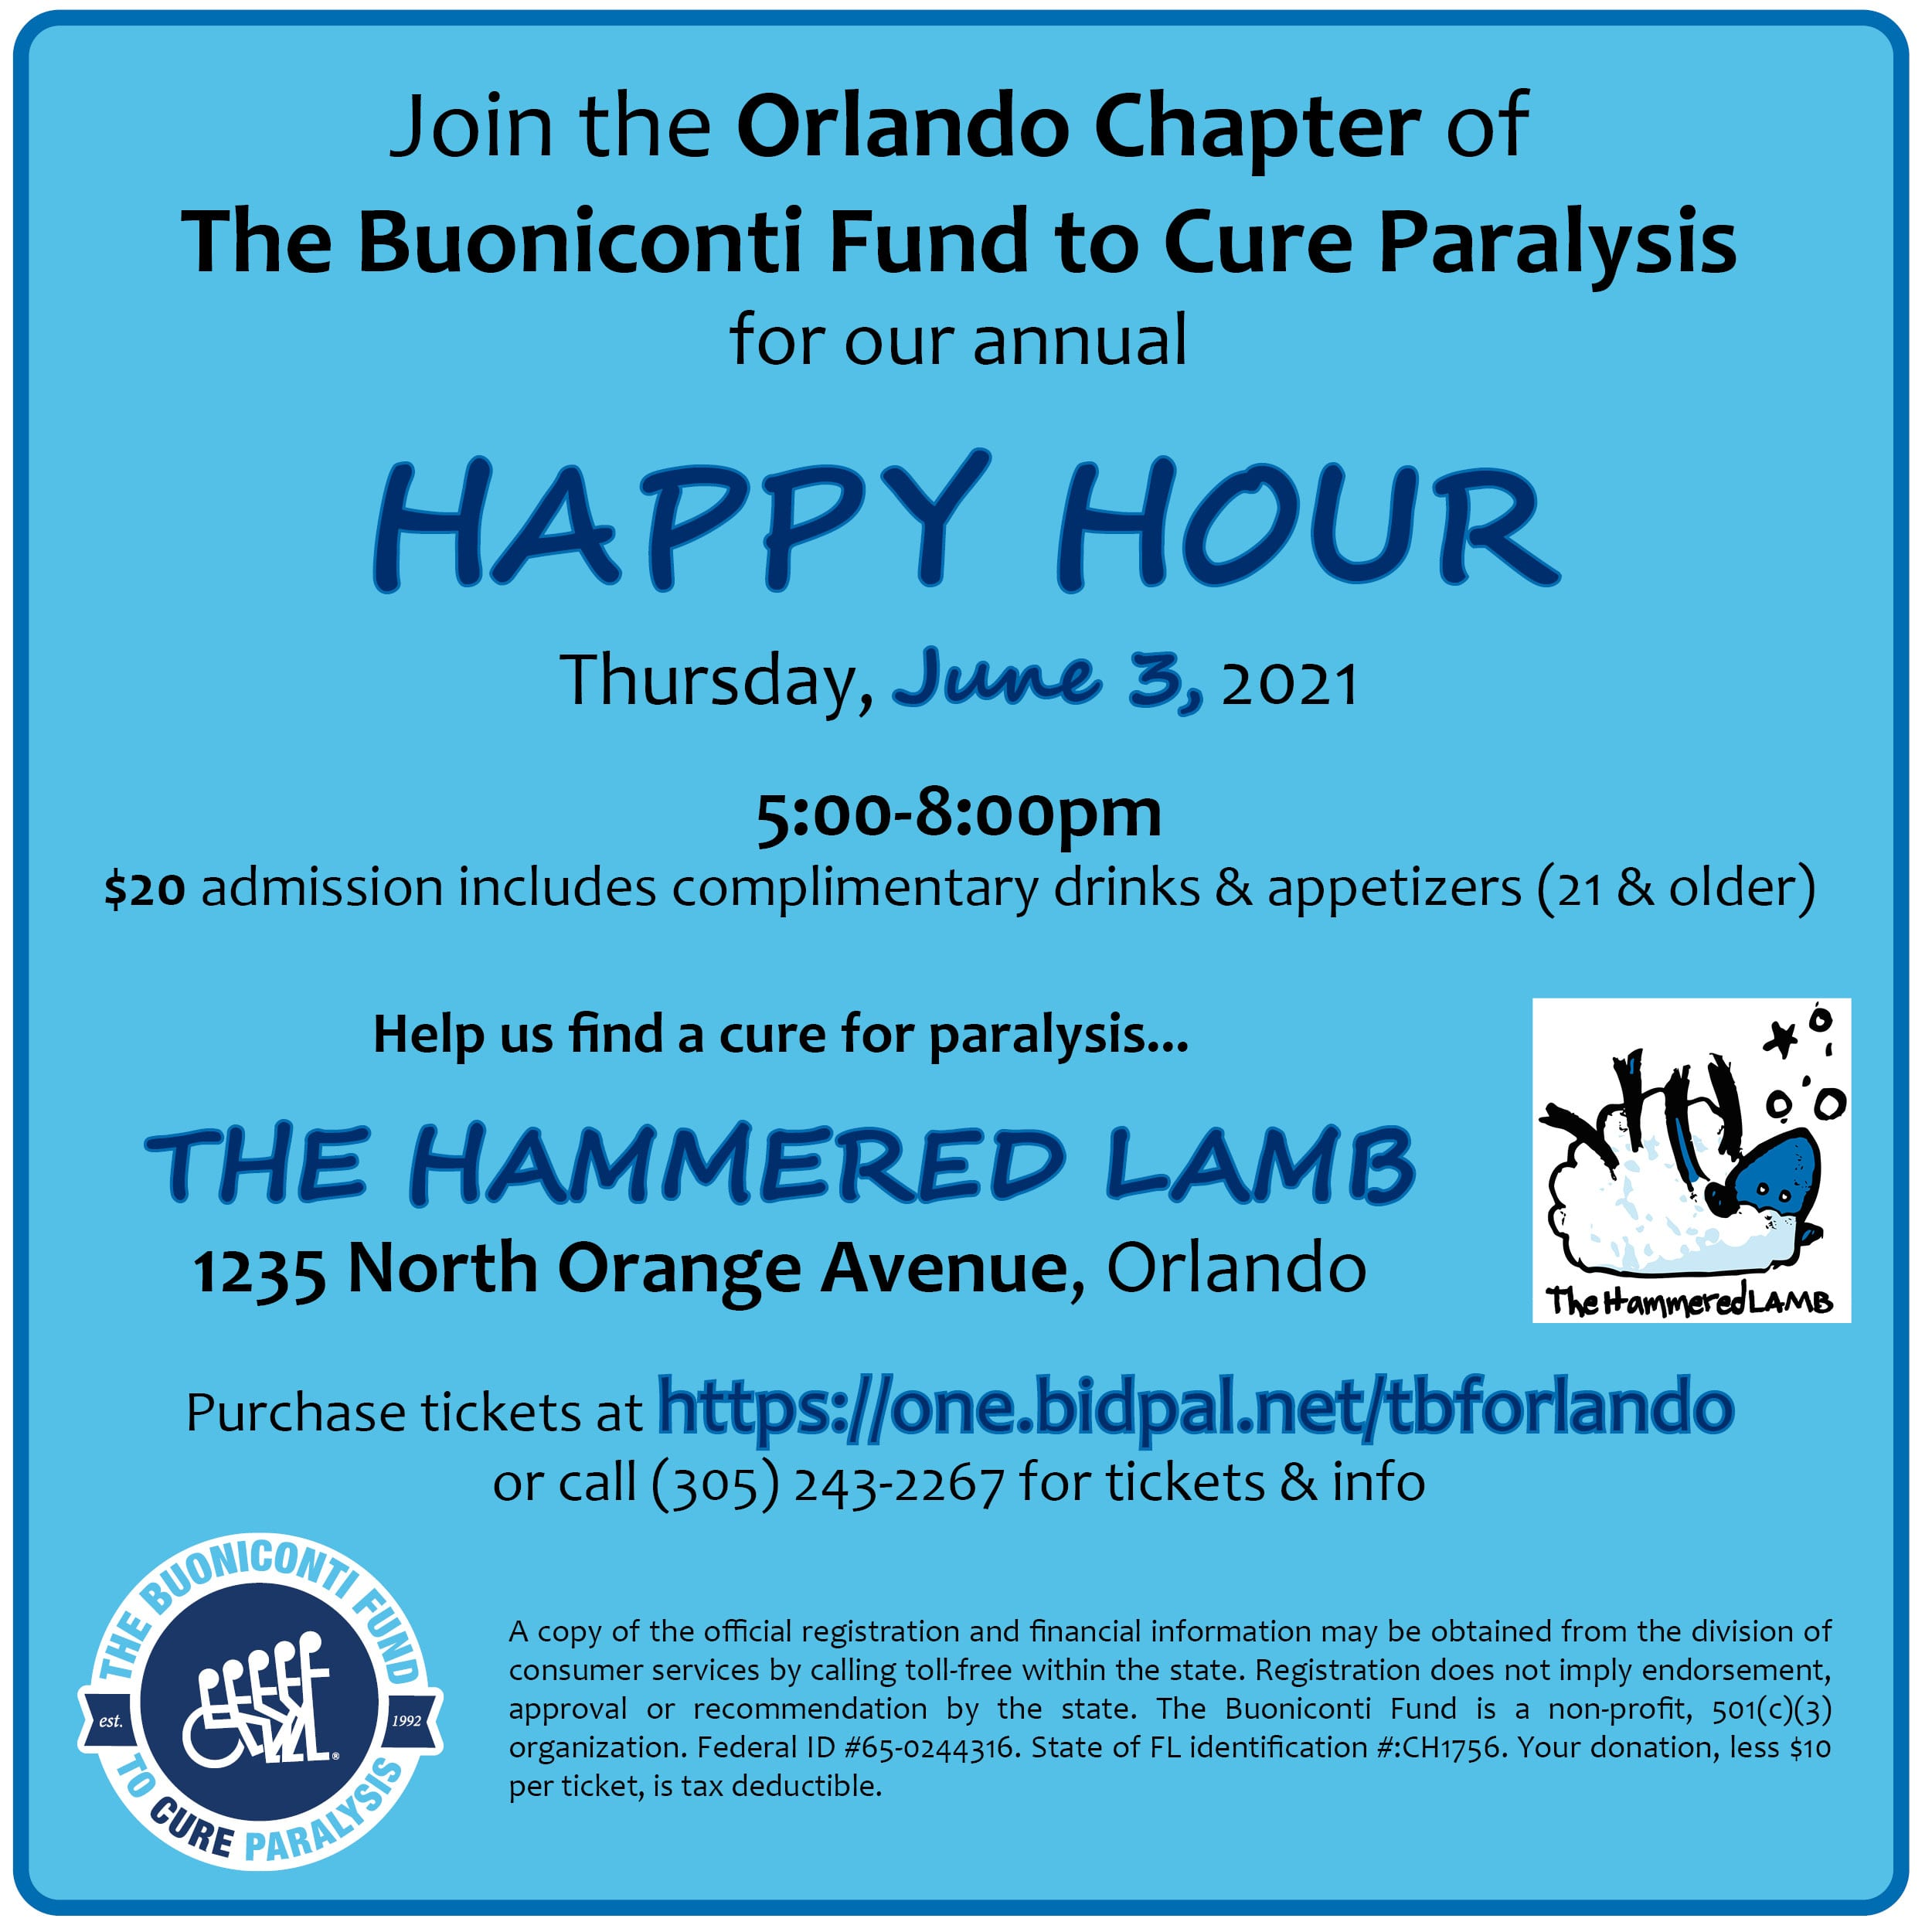 Happy Hour at The Hammered Lamb